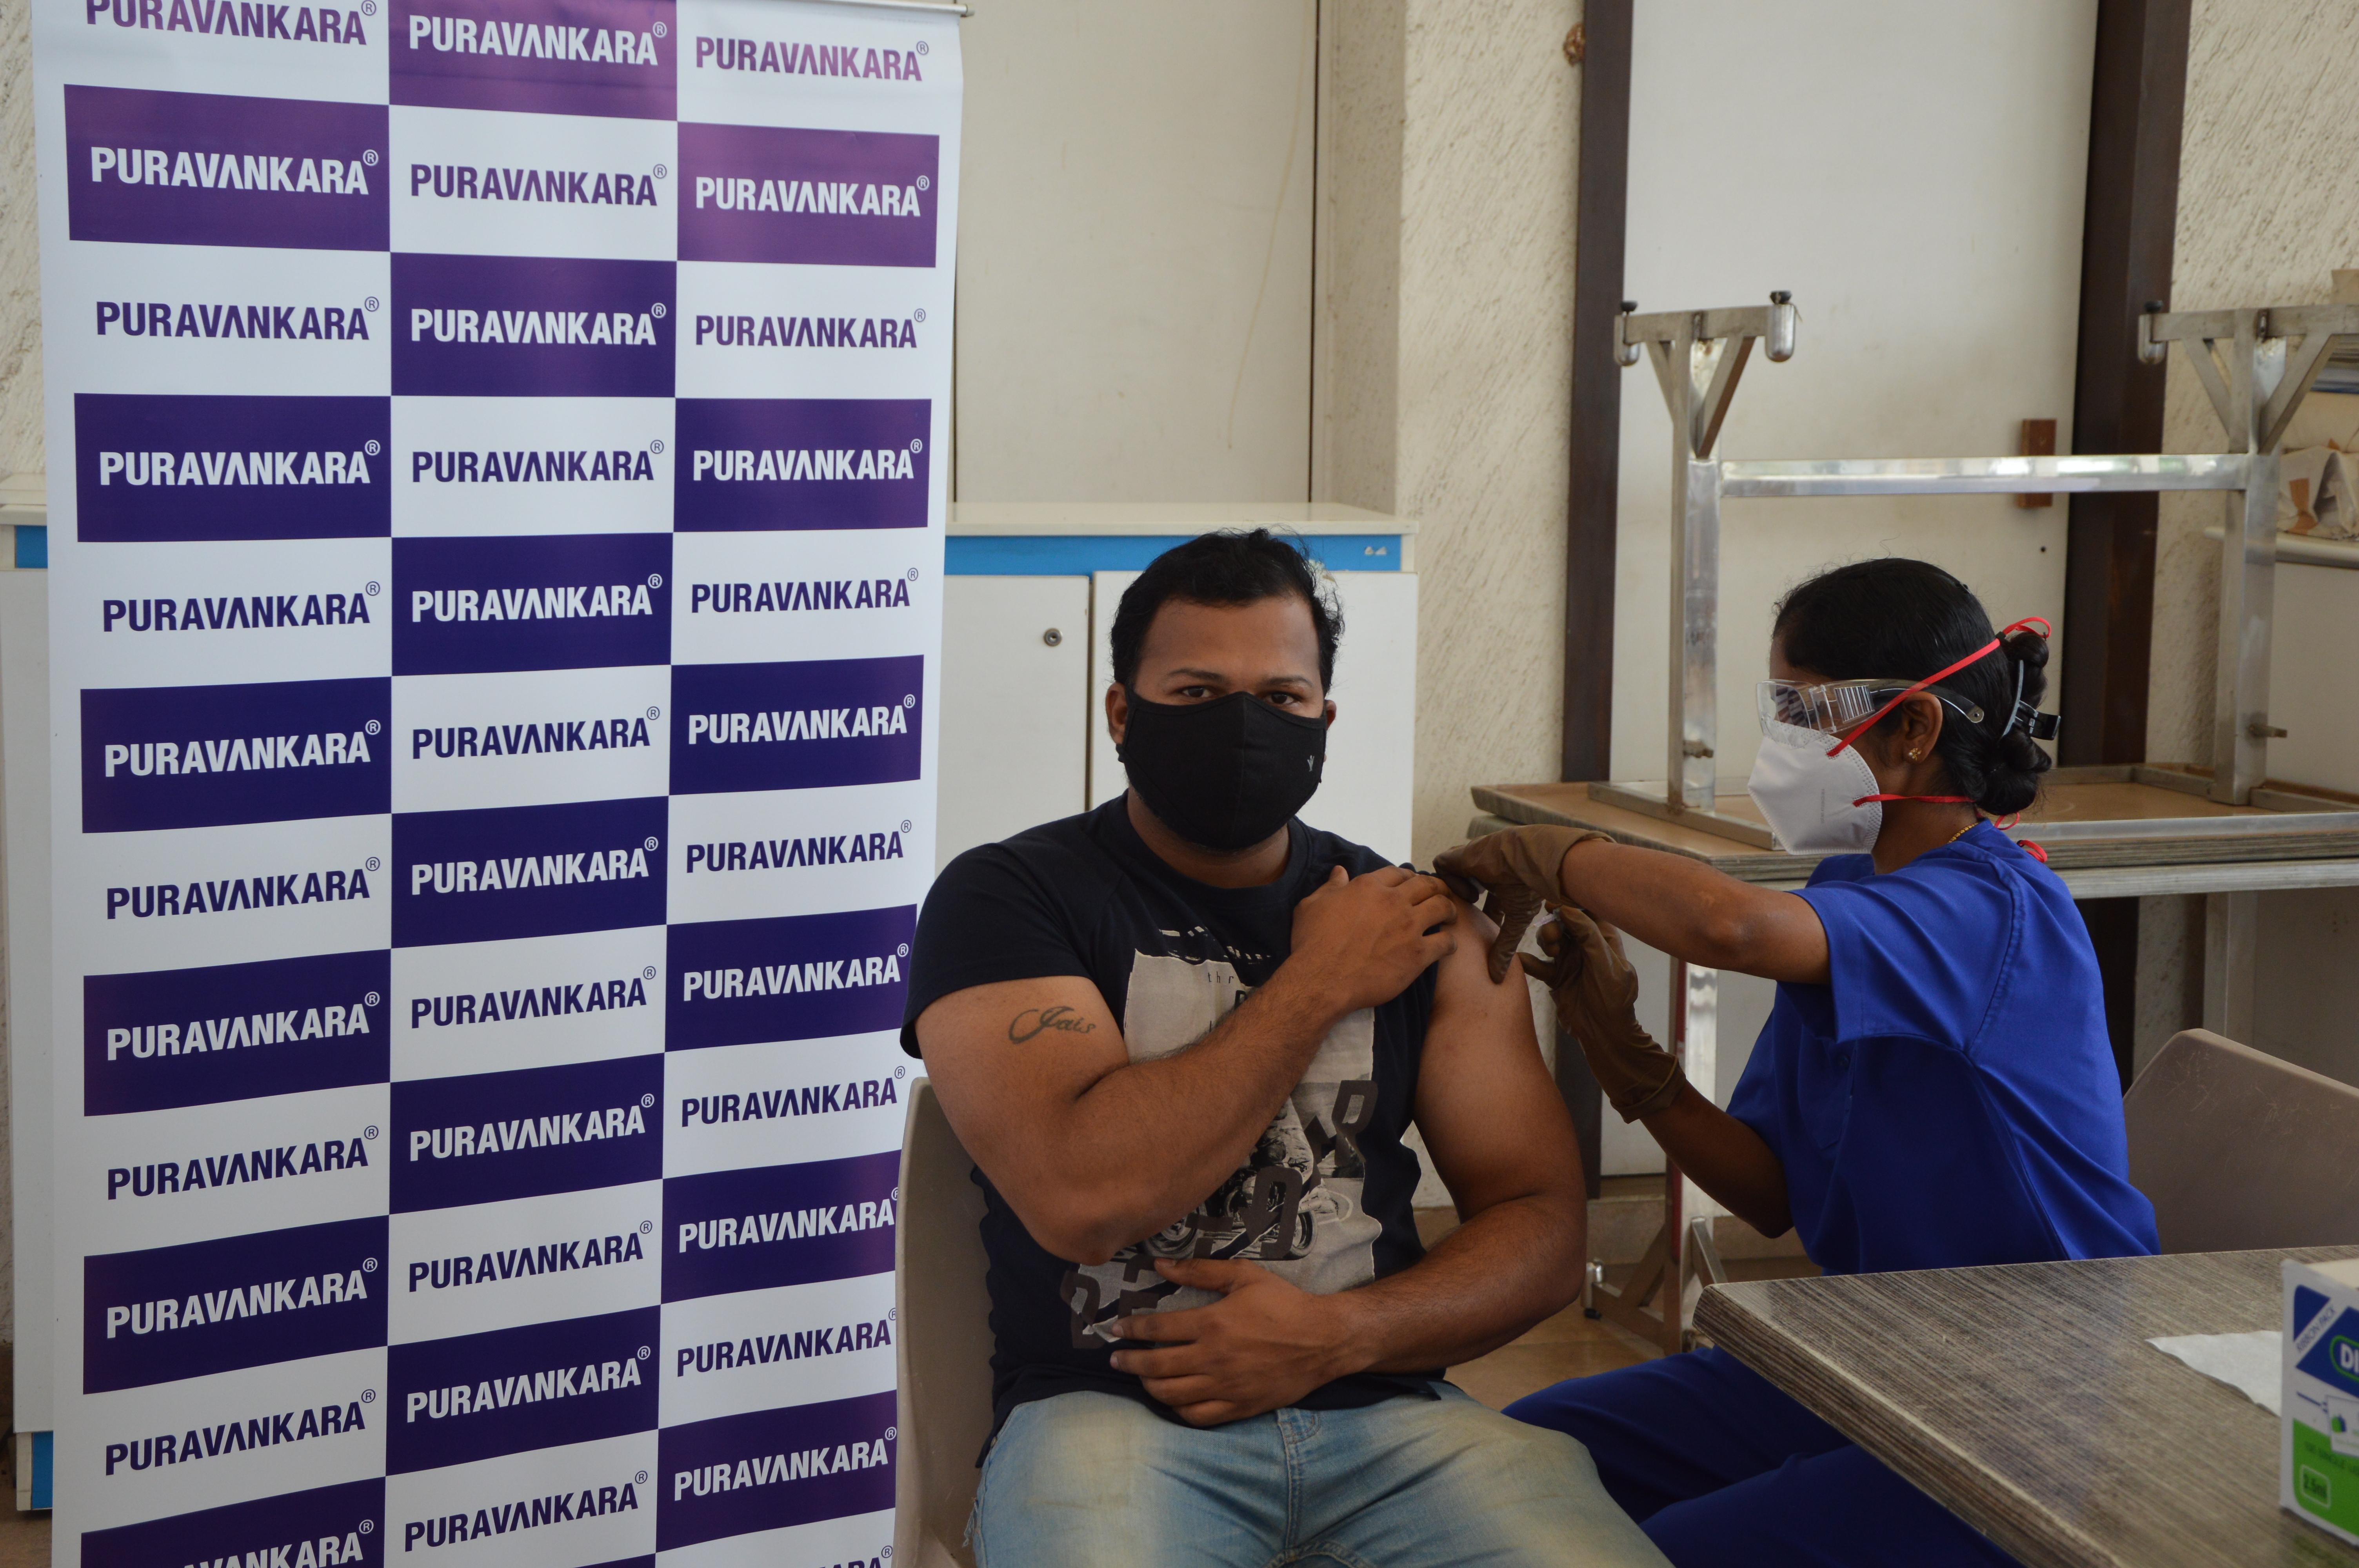 Puravankara Continues its Commitment to Vaccinate 100% of its Employees in India